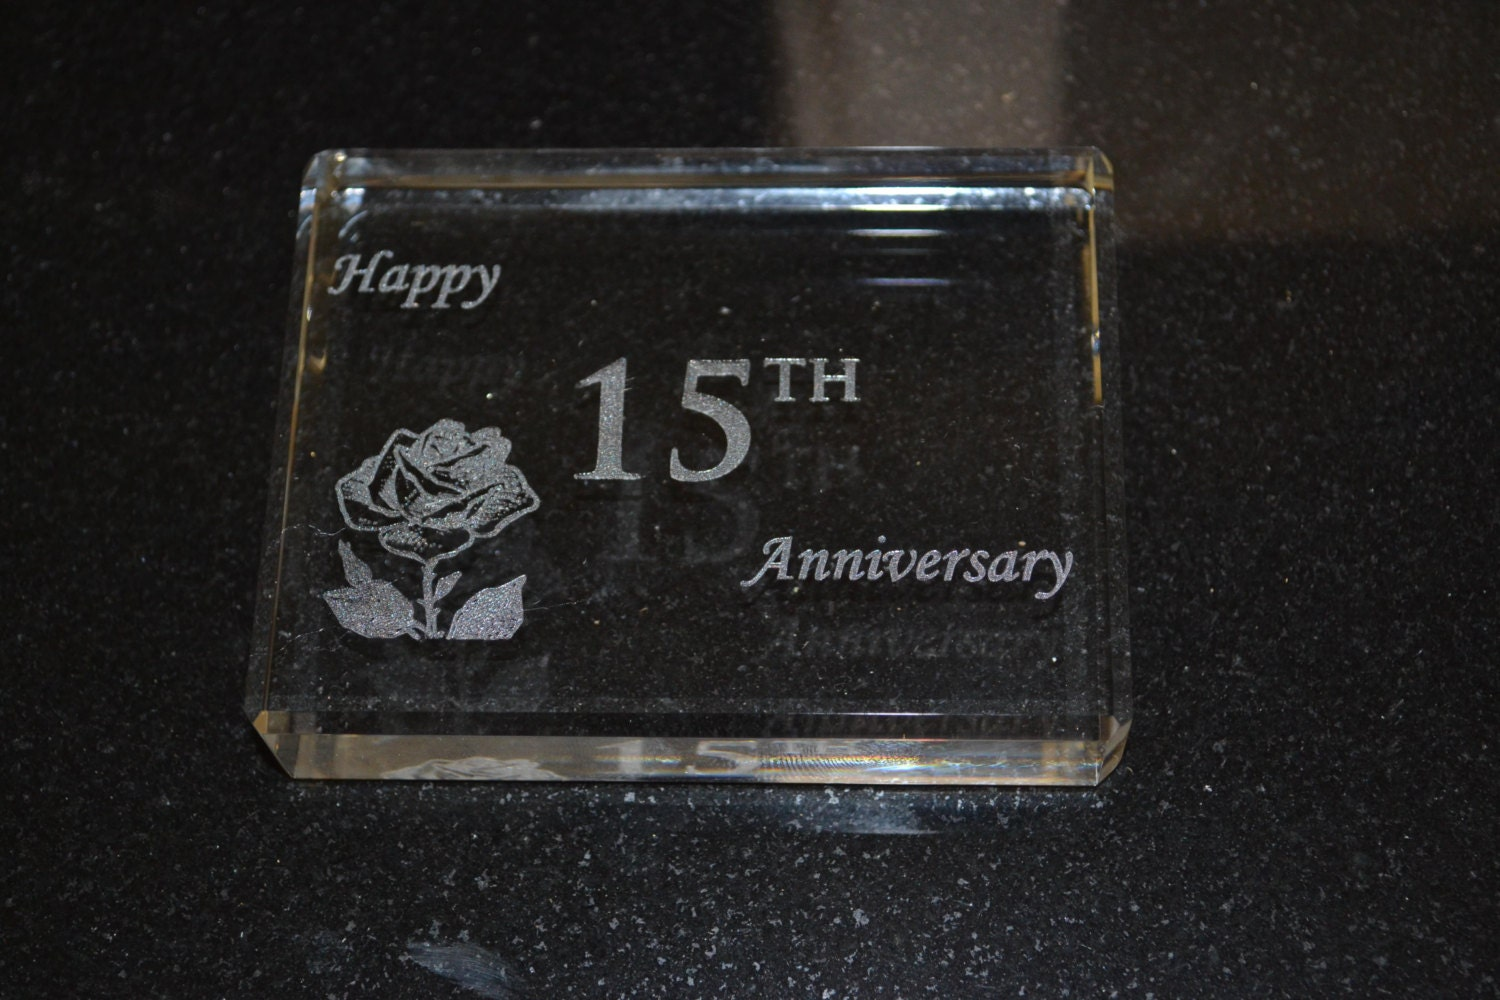 Crystal Wedding Anniversary Gifts For Her: 15 Year Anniversary Crystal Paperweight Gift With Happy 15th